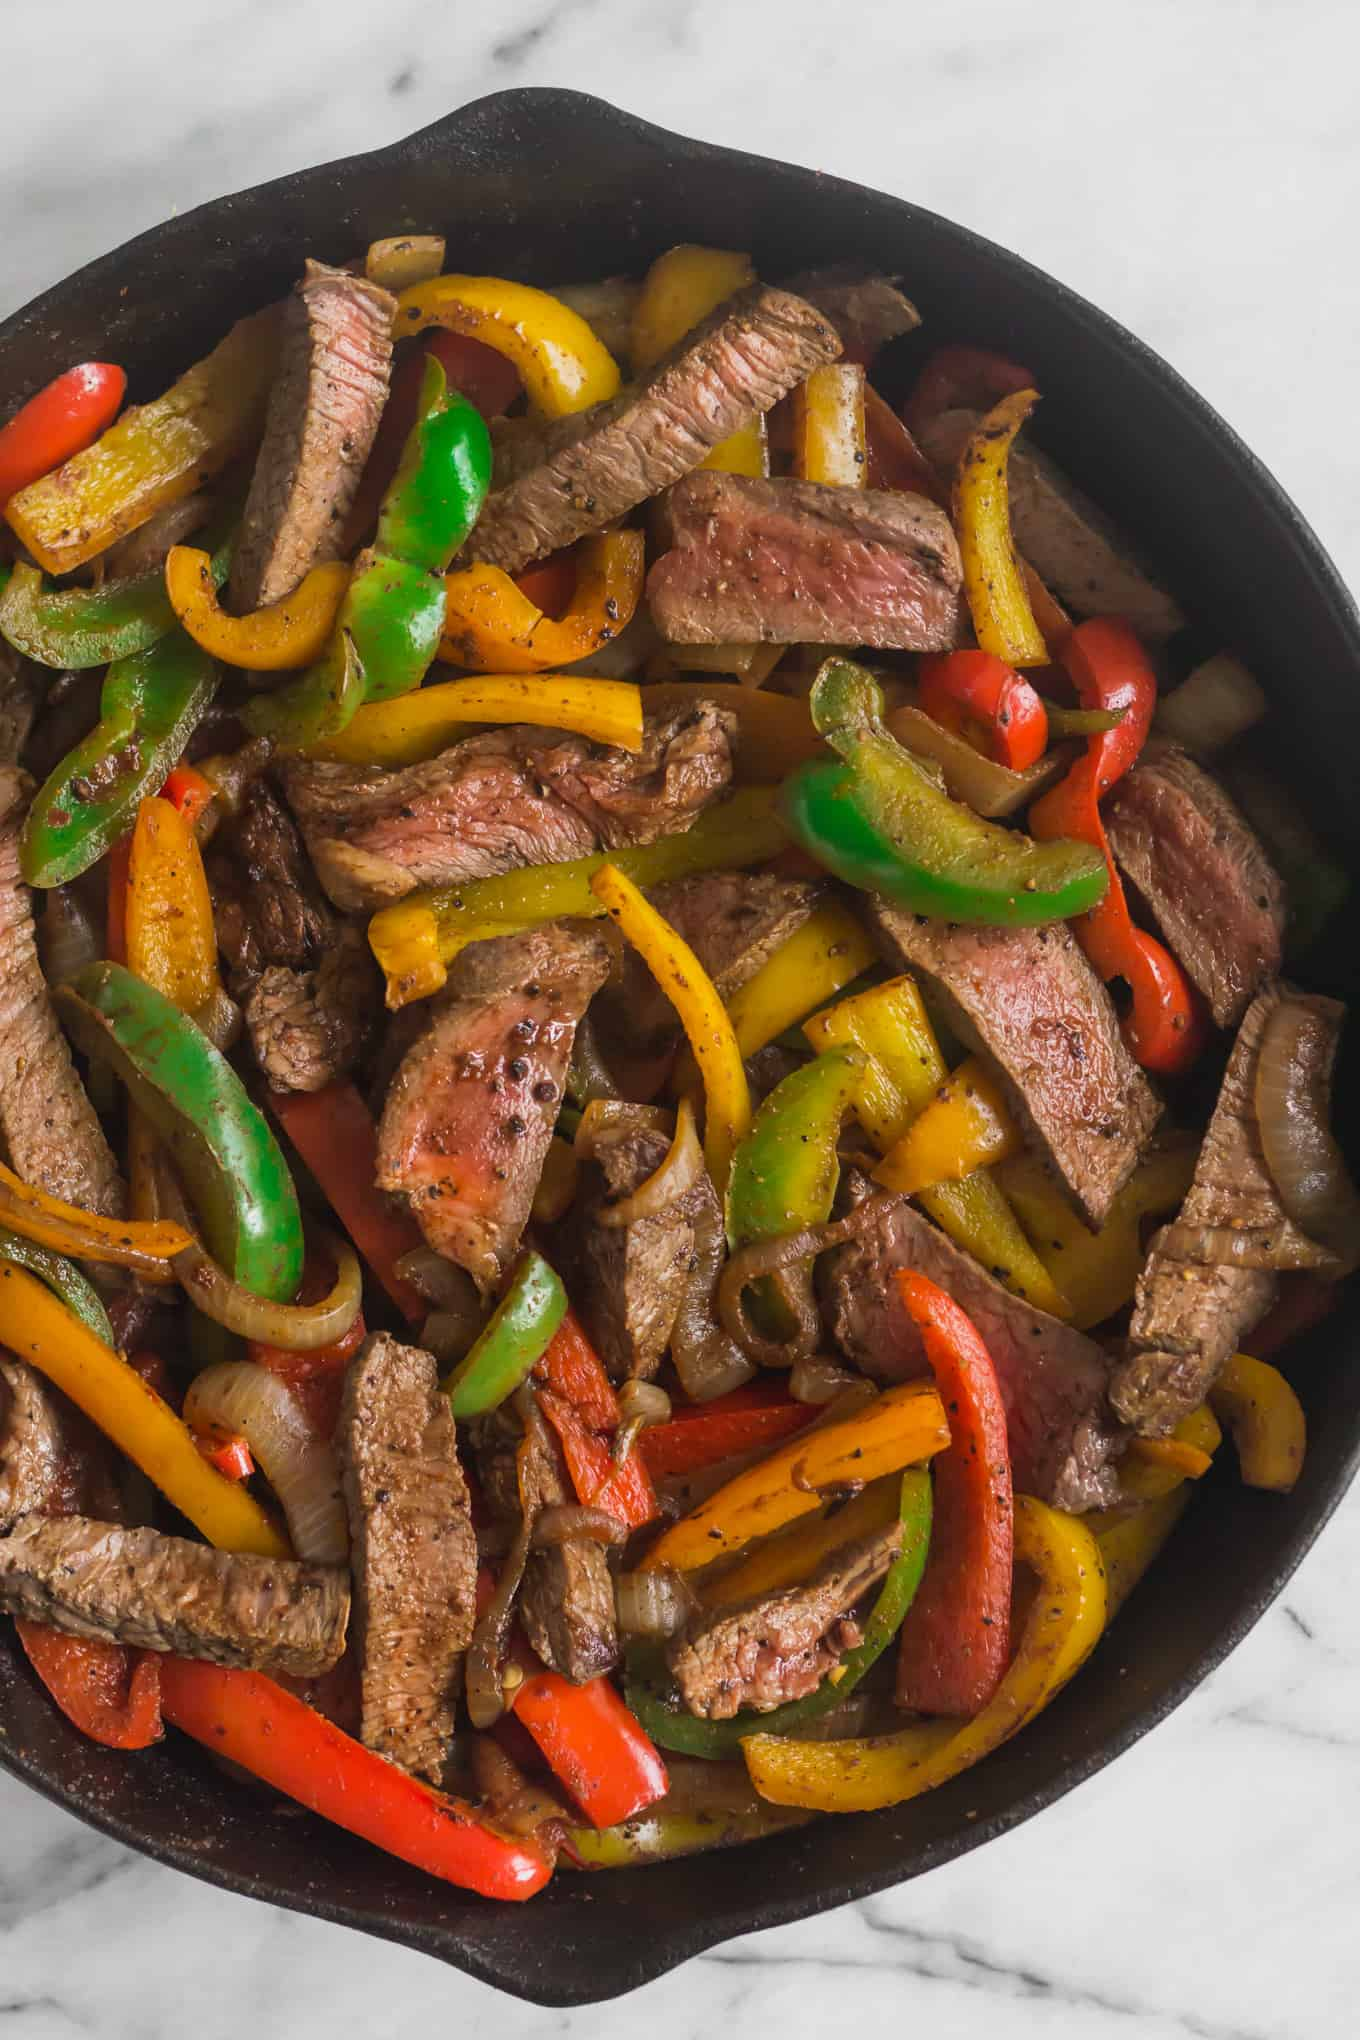 Large cast iron pan filled with steak fajitas on a white marble countertop